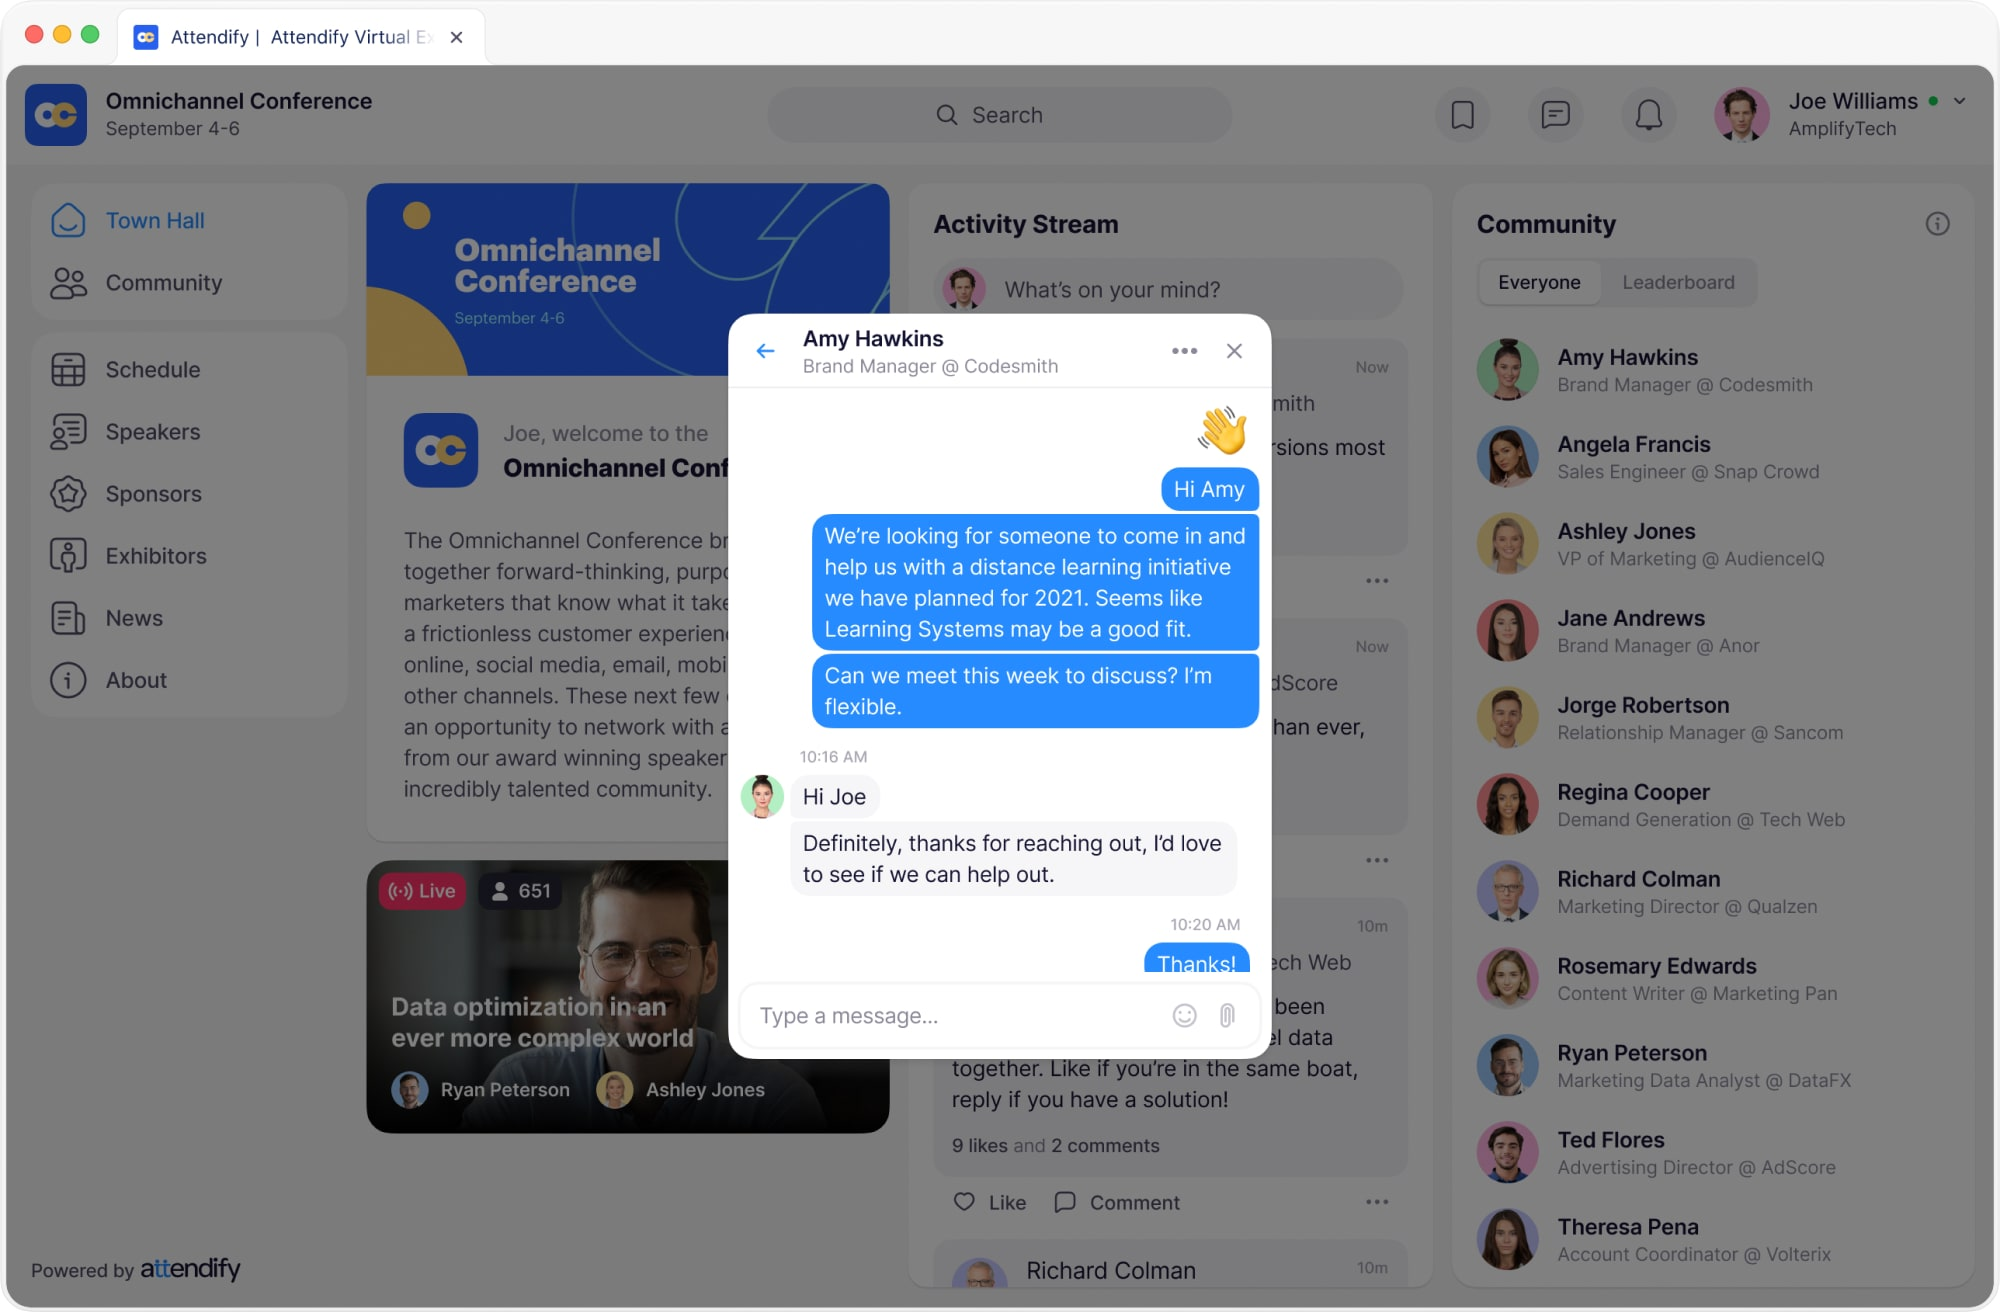 Keep your event community connected and informed with Attendify's mobile and online event platform